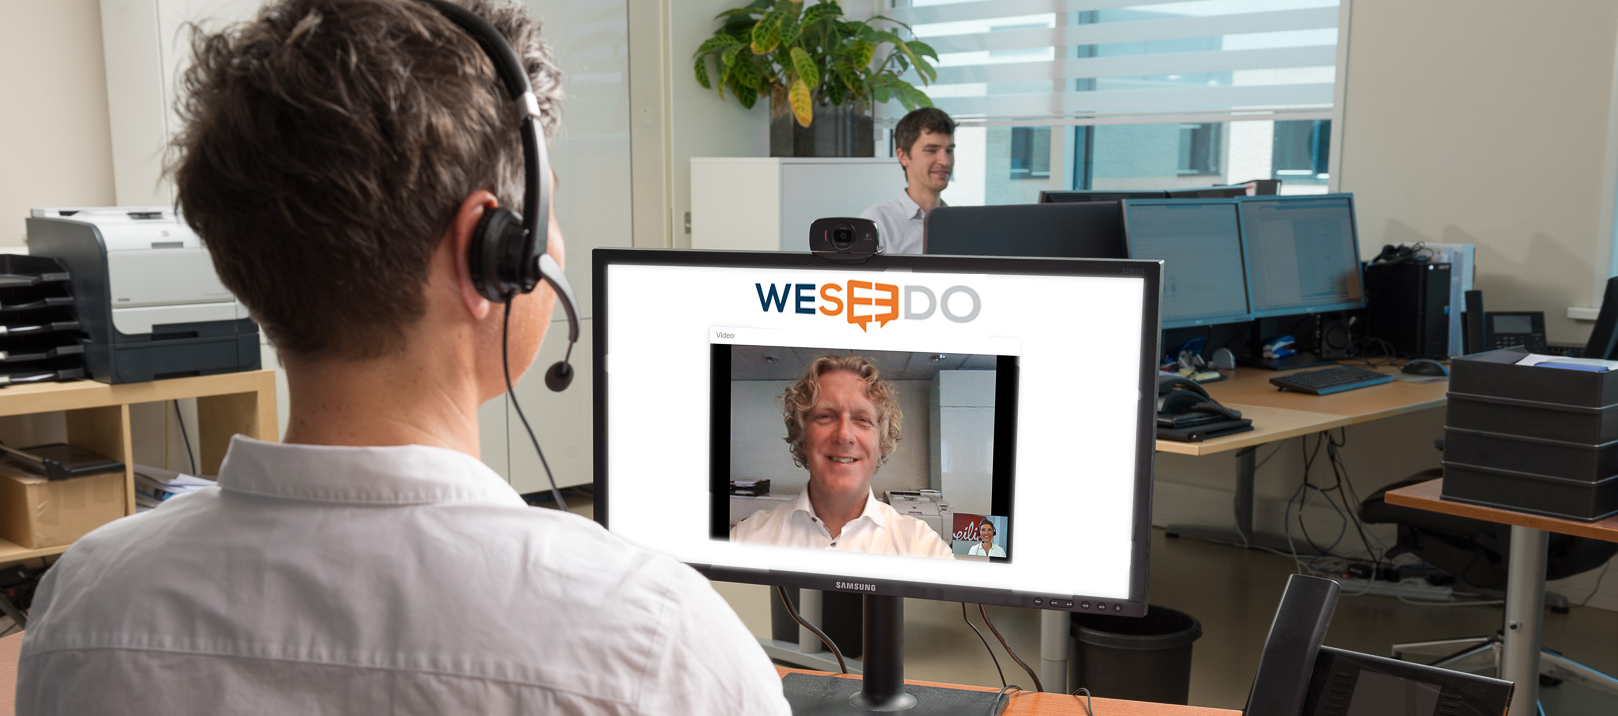 Online support - Webcare - WebRTC